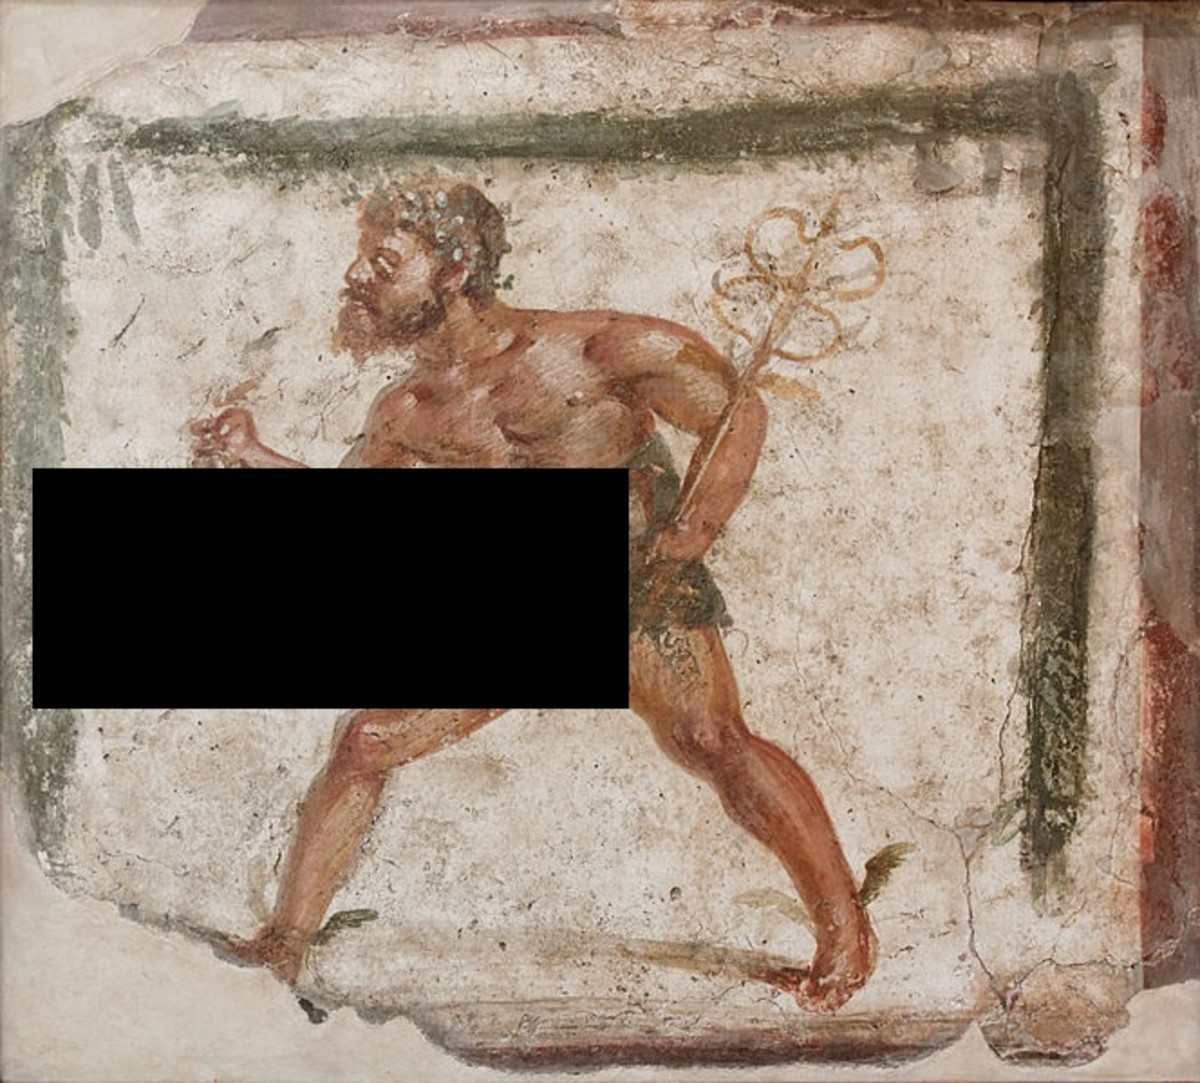 This is Priapus - An extremely over endowed and likely frustrated Roman God. Believers used to rub him for luck - seriously.